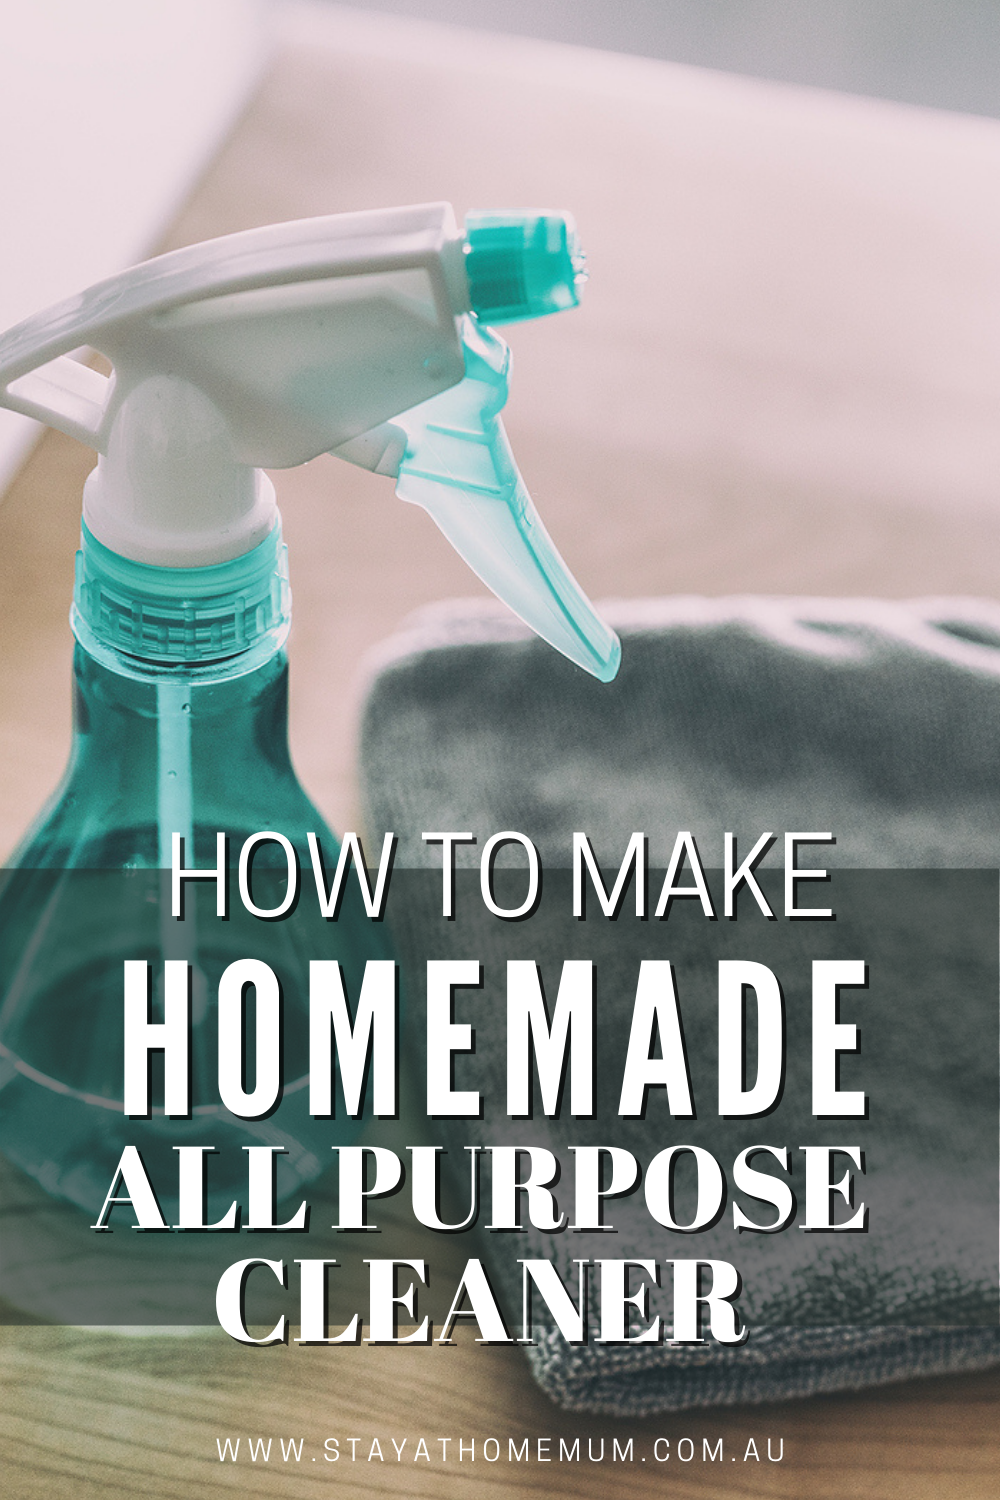 How to Make Homemade All Purpose Cleaner | Stay at Home Mum